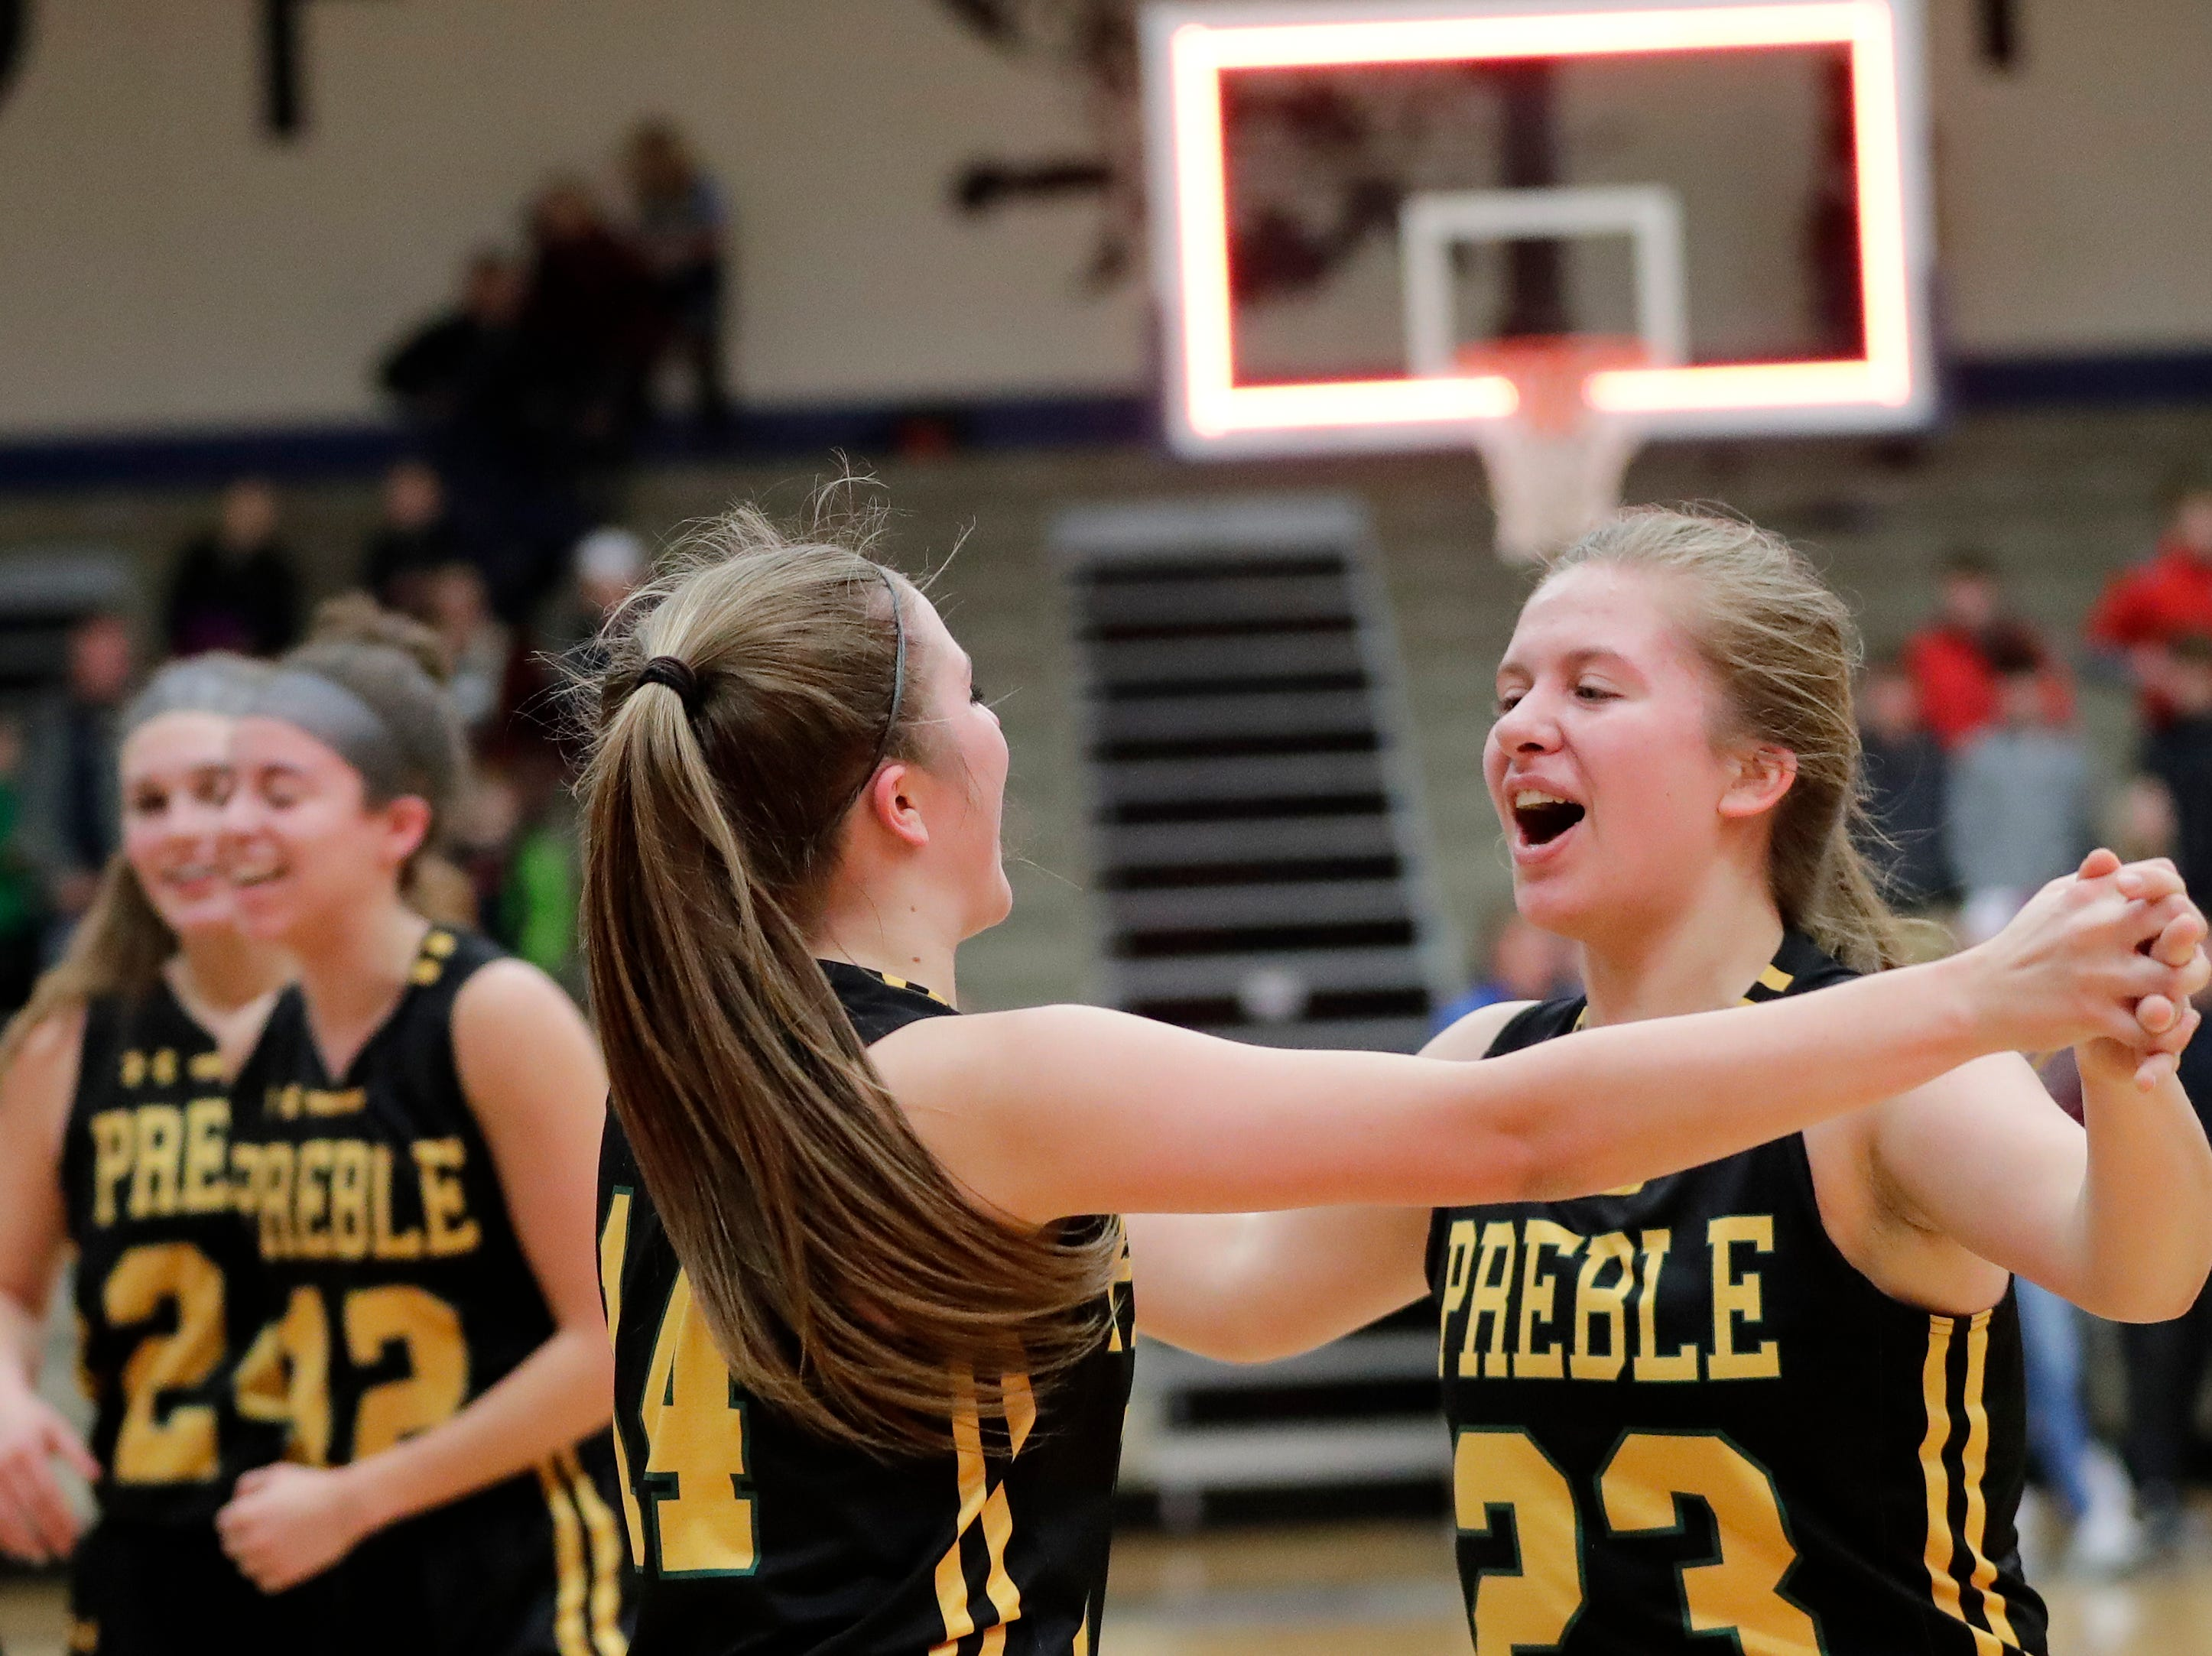 Green Bay Preble's Carley Thiry (23) celebrates with Taylor Sleger (14) after the Hornets defeated Bay Port 61-53 in an FRCC girls basketball game at Bay Port high school on Friday, February 8, 2019 in Suamico, Wis.